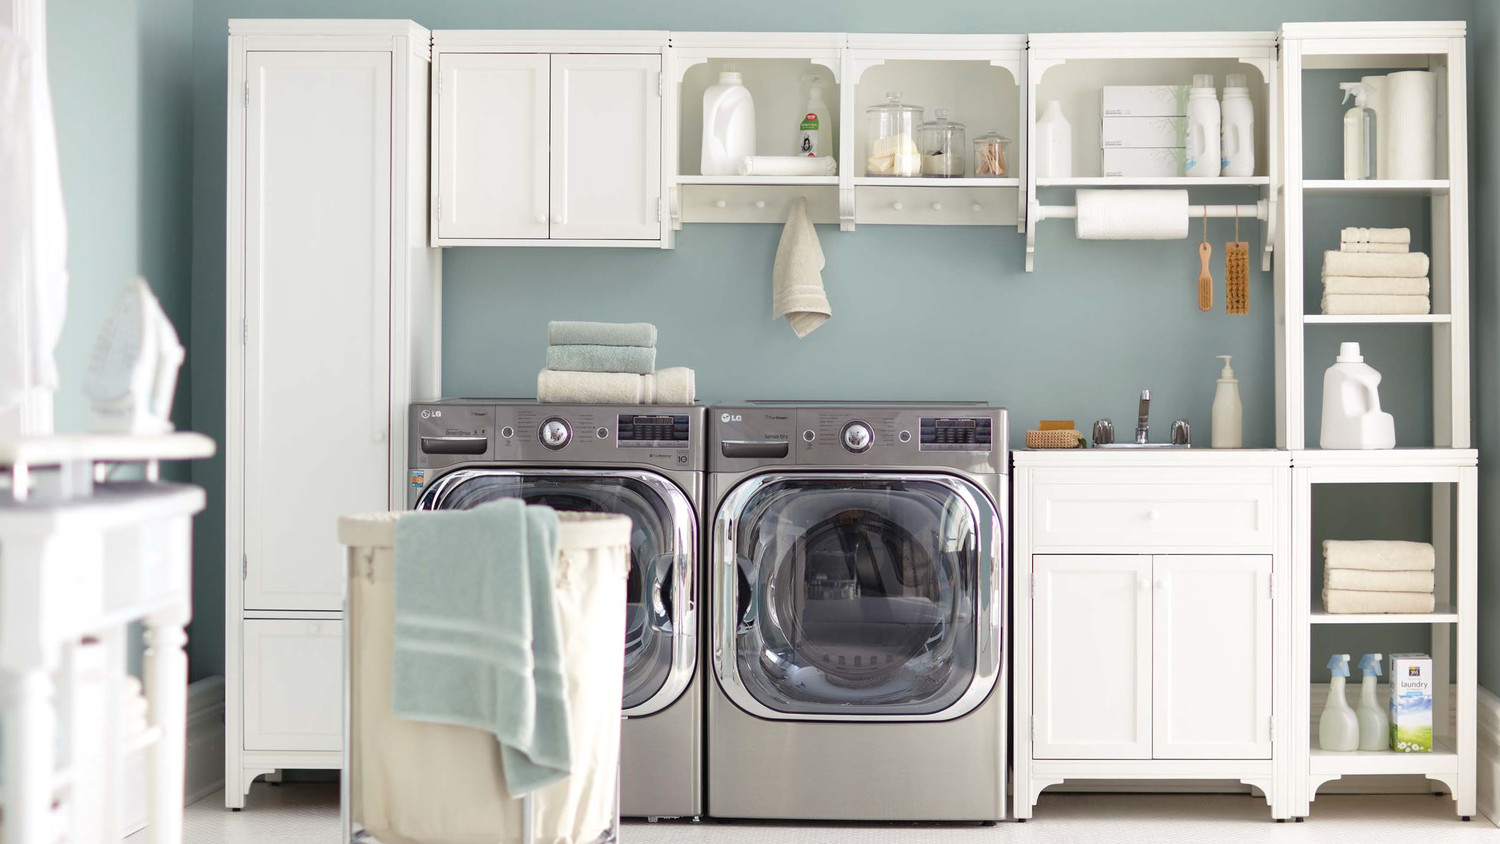 Laundry Room Cabinet Ideas 12 essential laundry-room organizing ideas | martha stewart